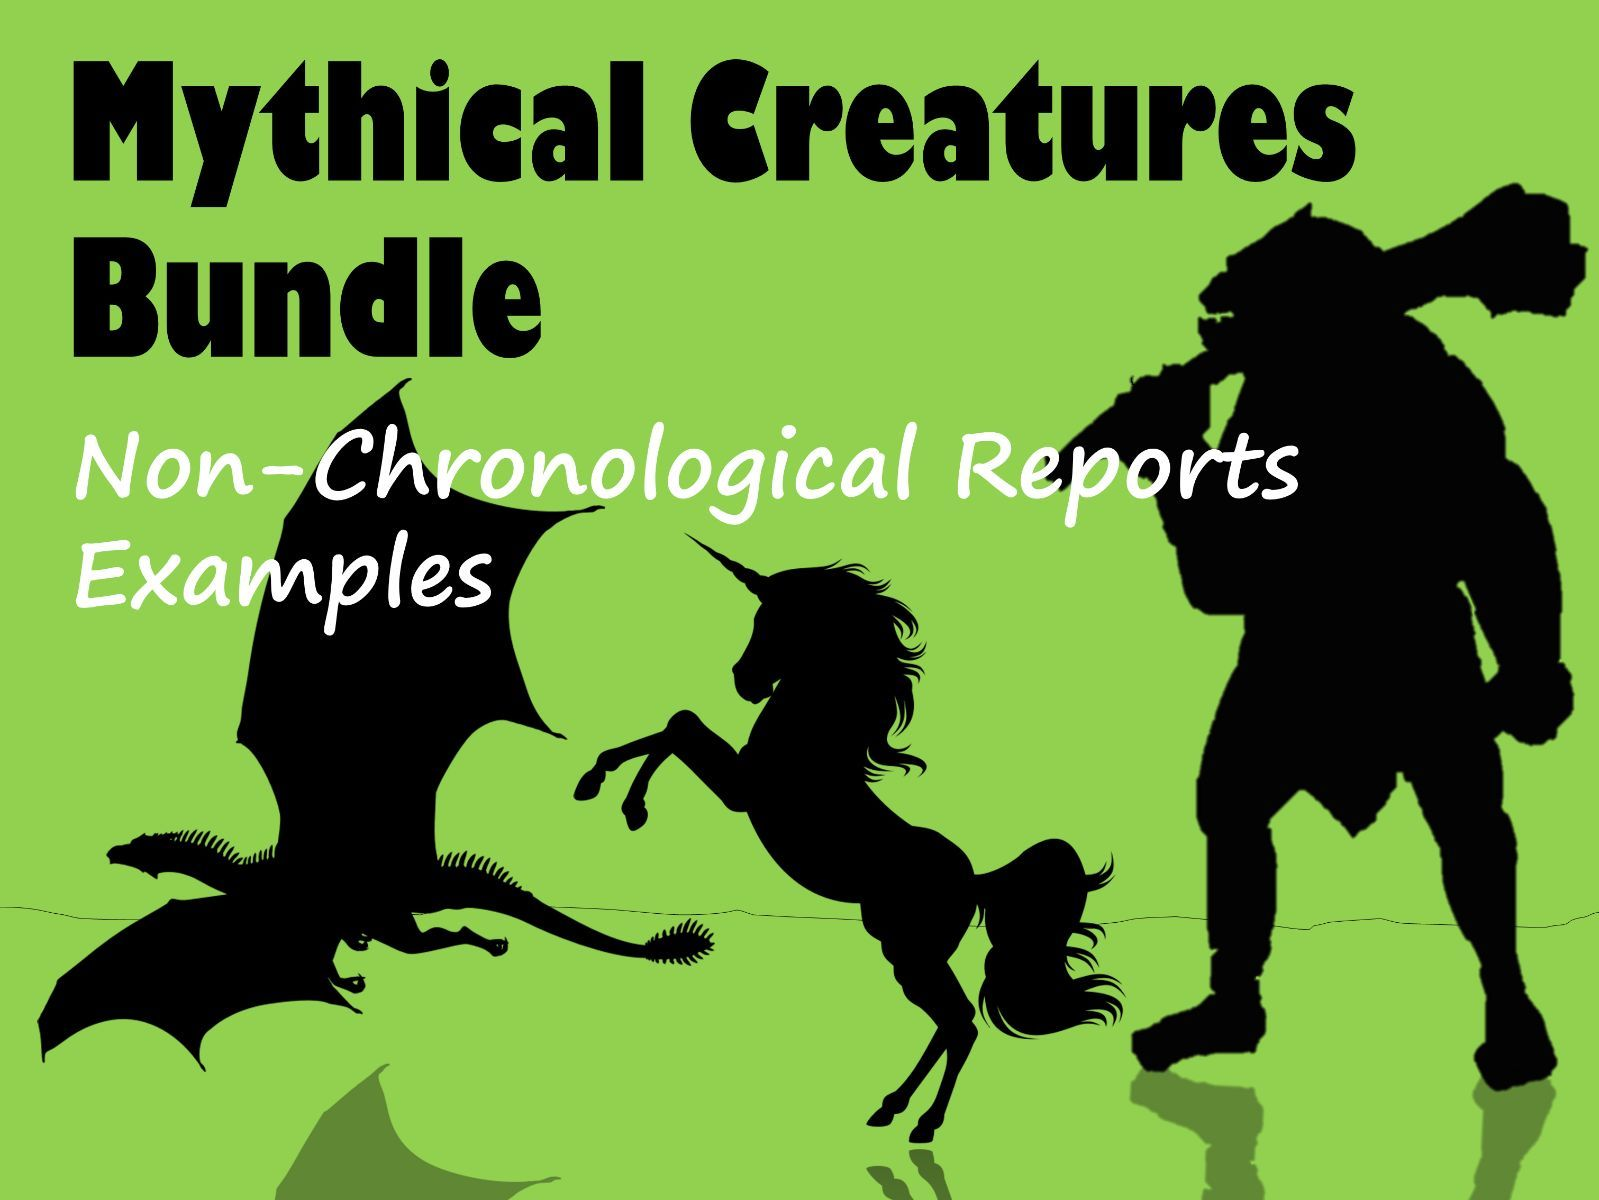 Mythical Creatures Example Non-Chronological Report BUNDLE